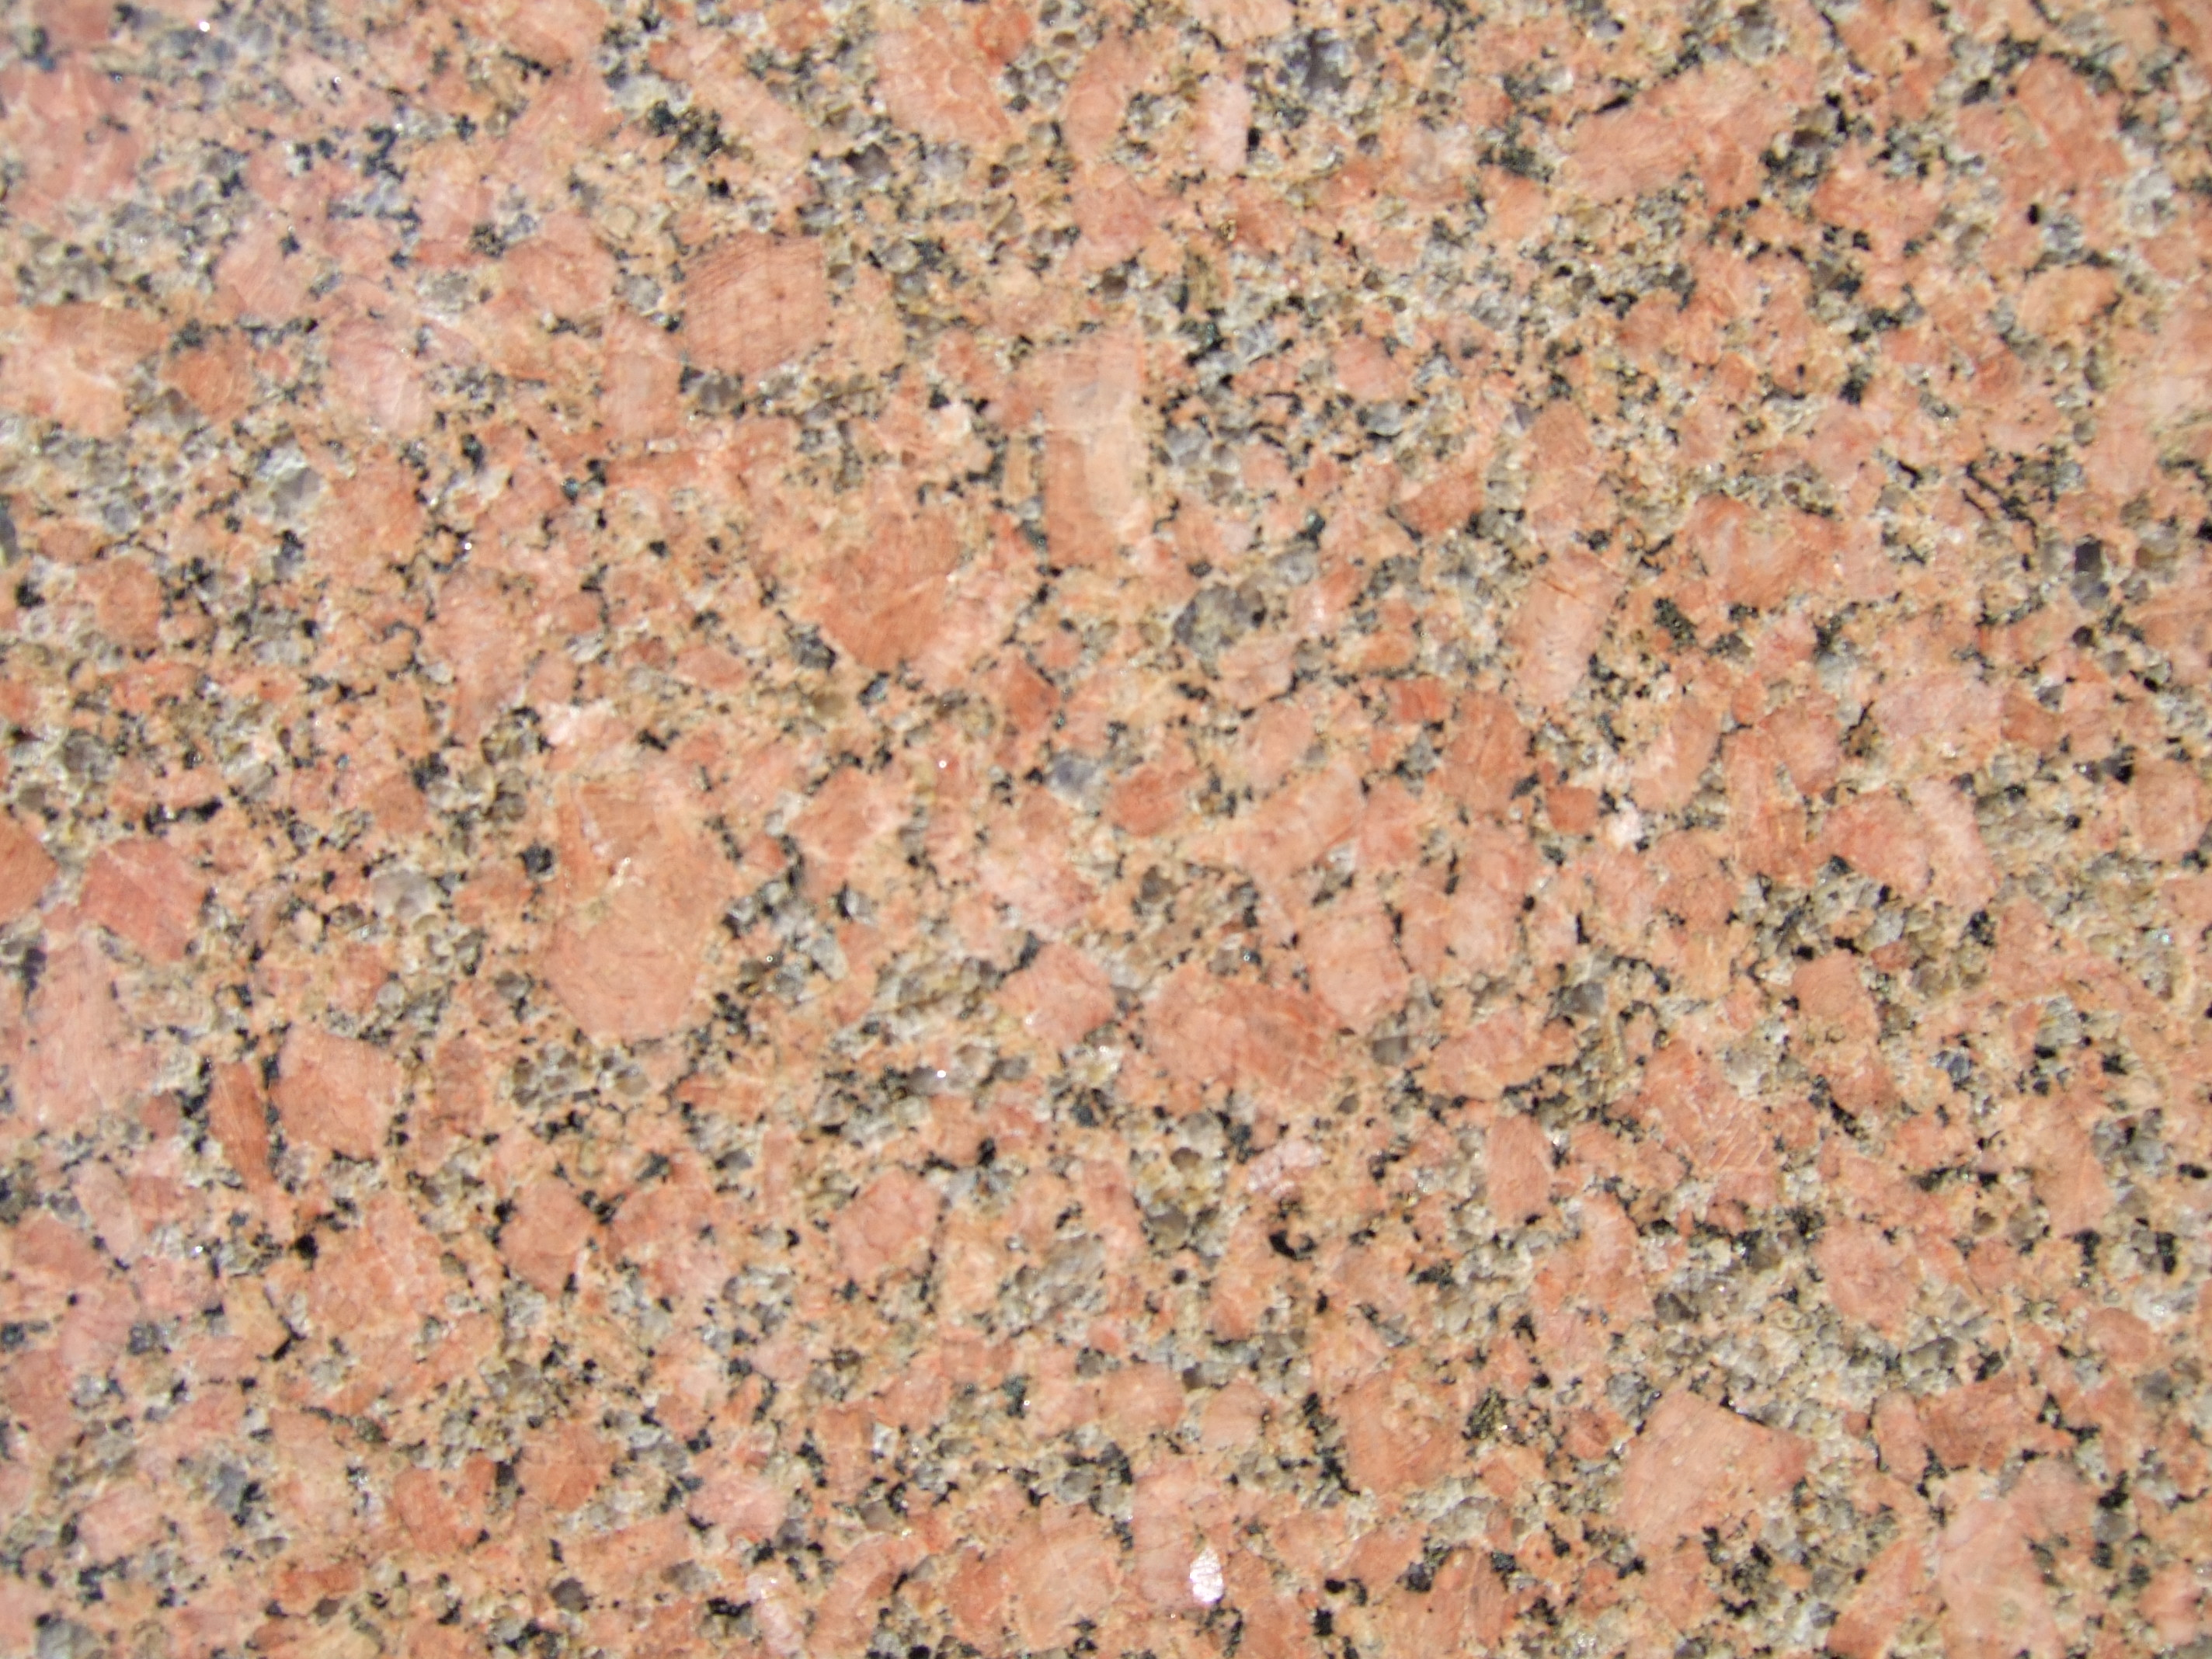 Granite Countertops Cincinnati Ohio Why Choose Granite Countertops Bella Stone Cincinnati Has